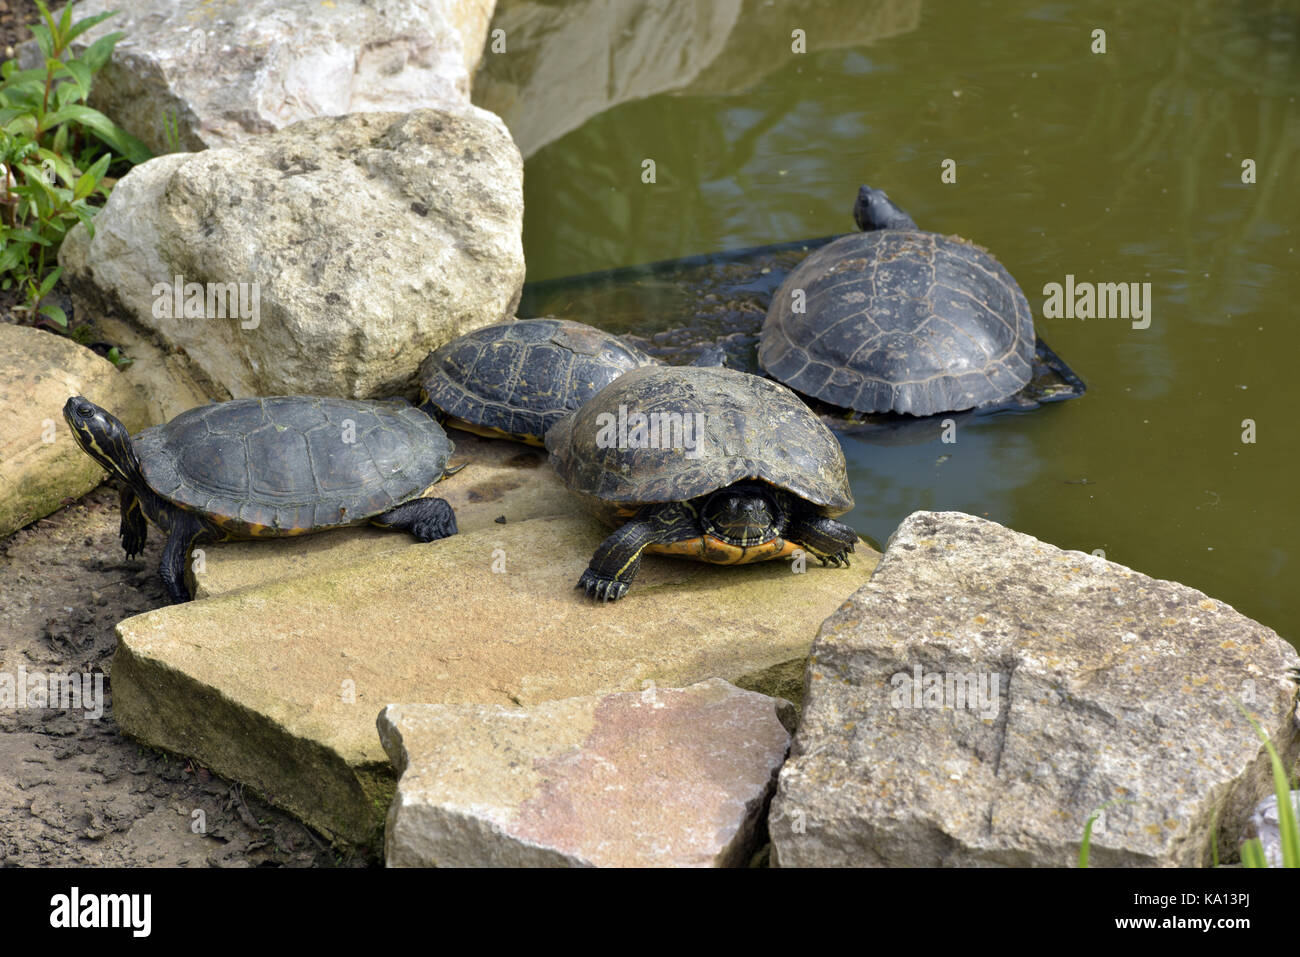 Terrapins on the rocks at the edge of a pond for sale at a garden centre in the uk. An invasive species causing - Stock Image